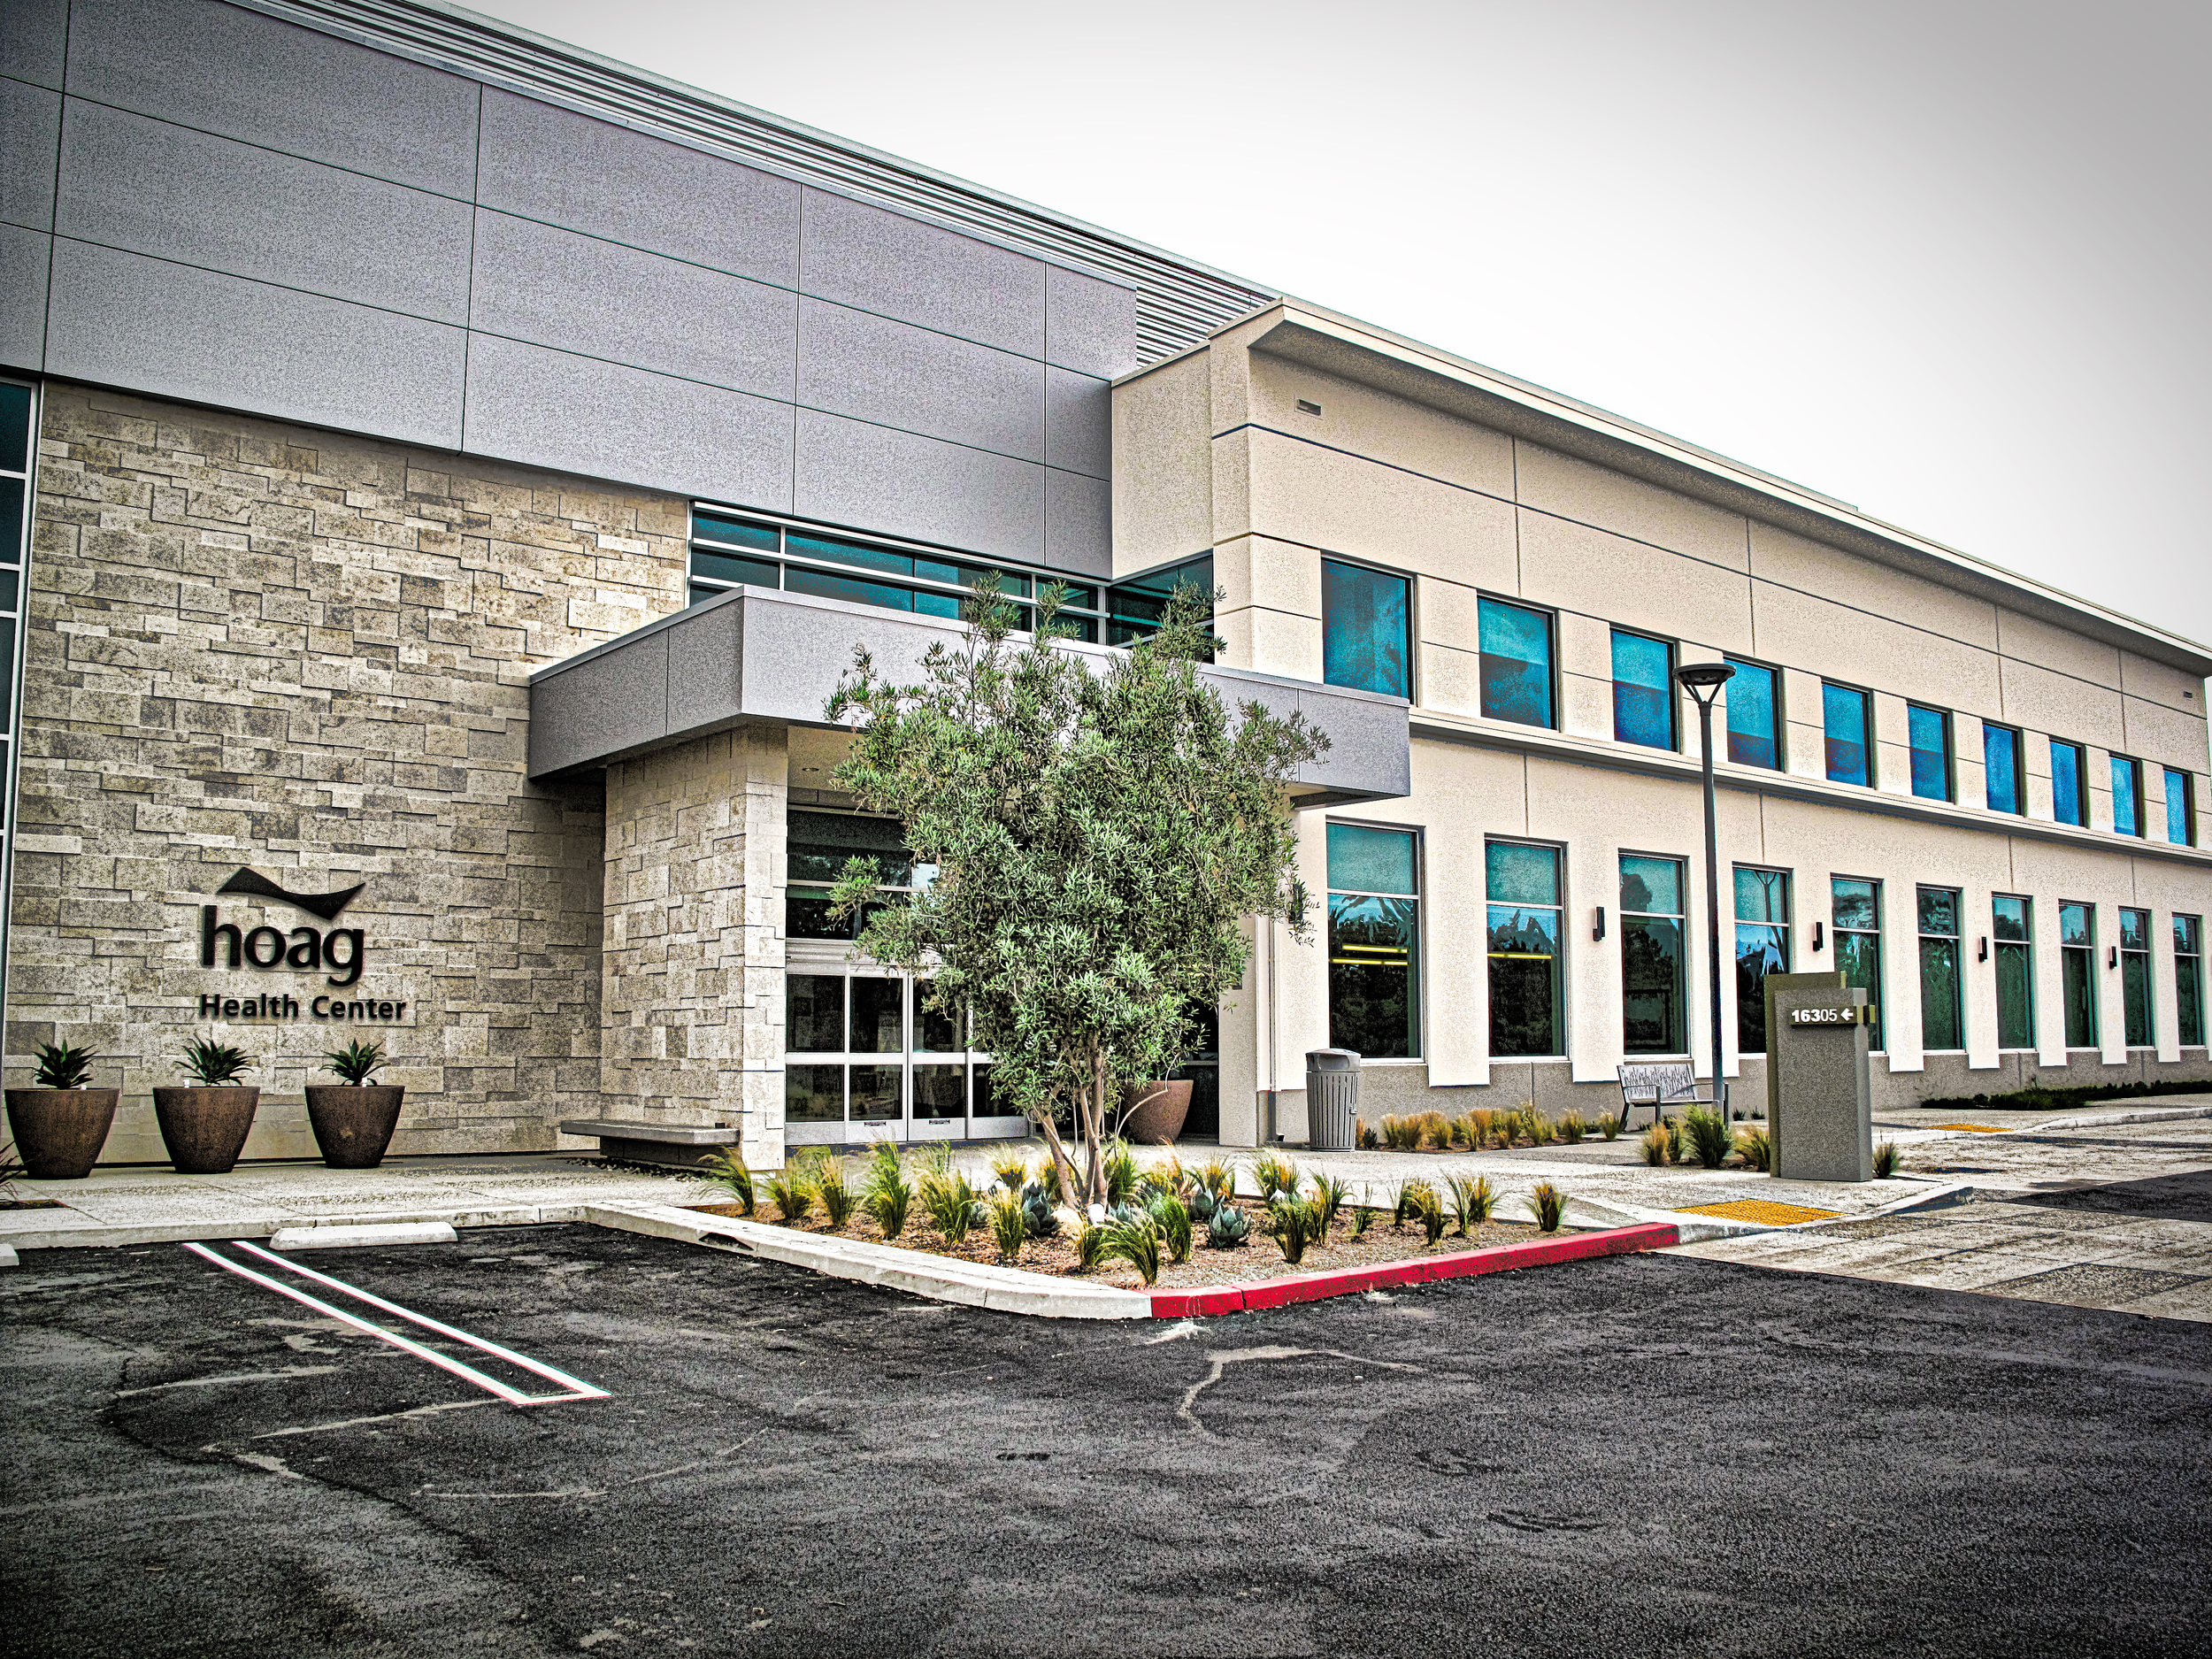 16305 Sand Canyon Ave,  Suite 255   Irvine, CA 92618    Phone: (949) 276-2446    Fax:(949) 276-2449